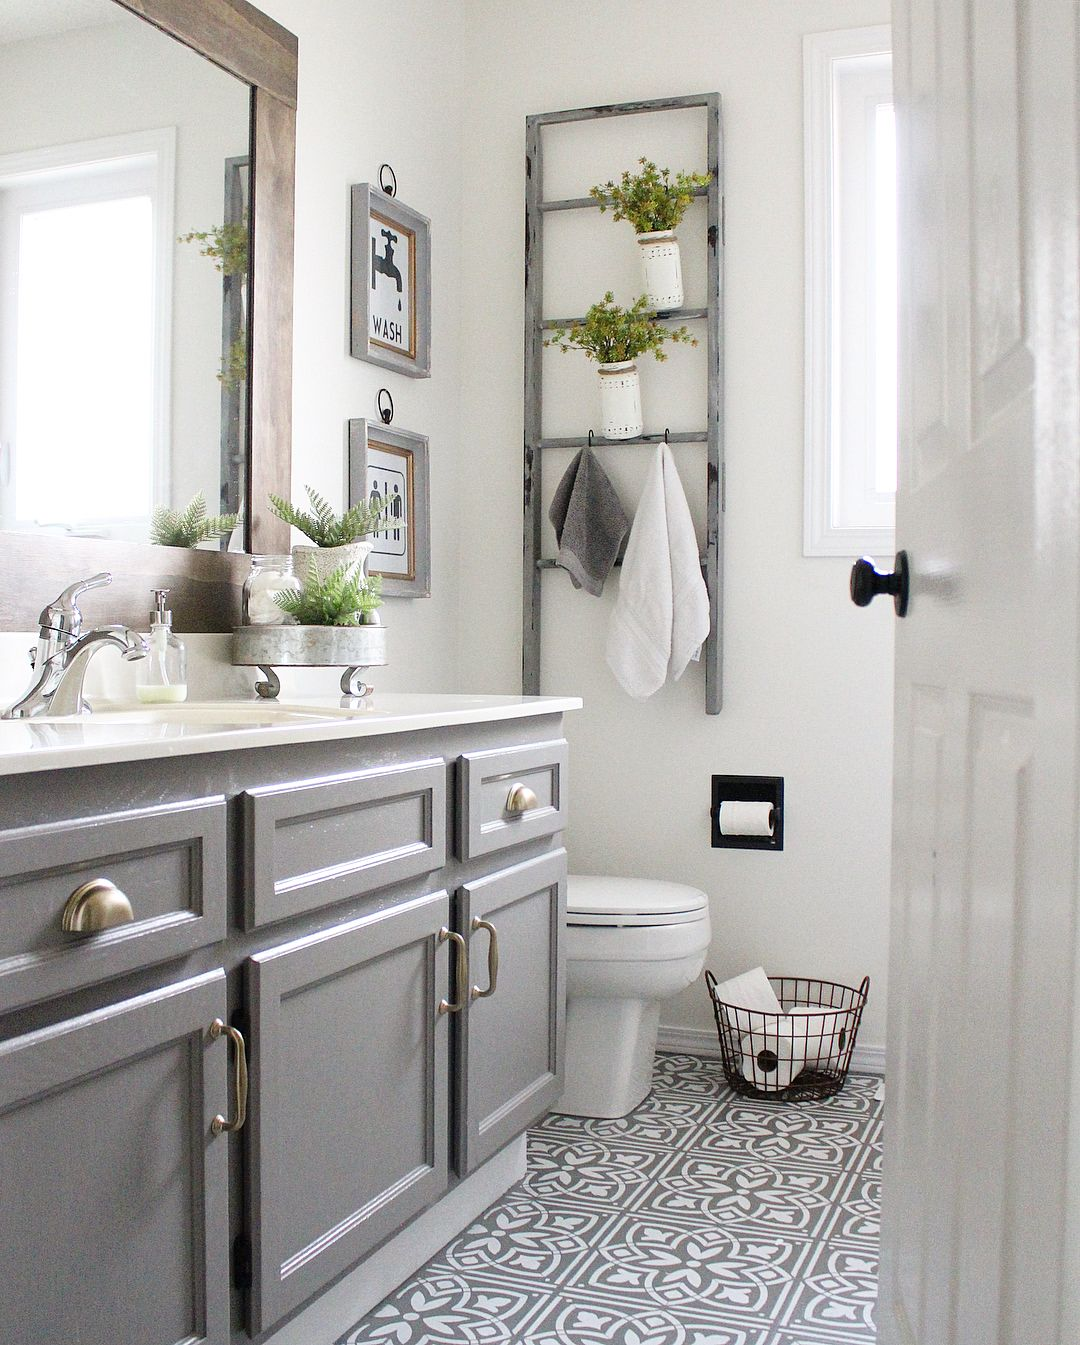 Pin By Stephanie Gleeson On Toiletd: Pin By Stephanie Guice On Brilliant DIY